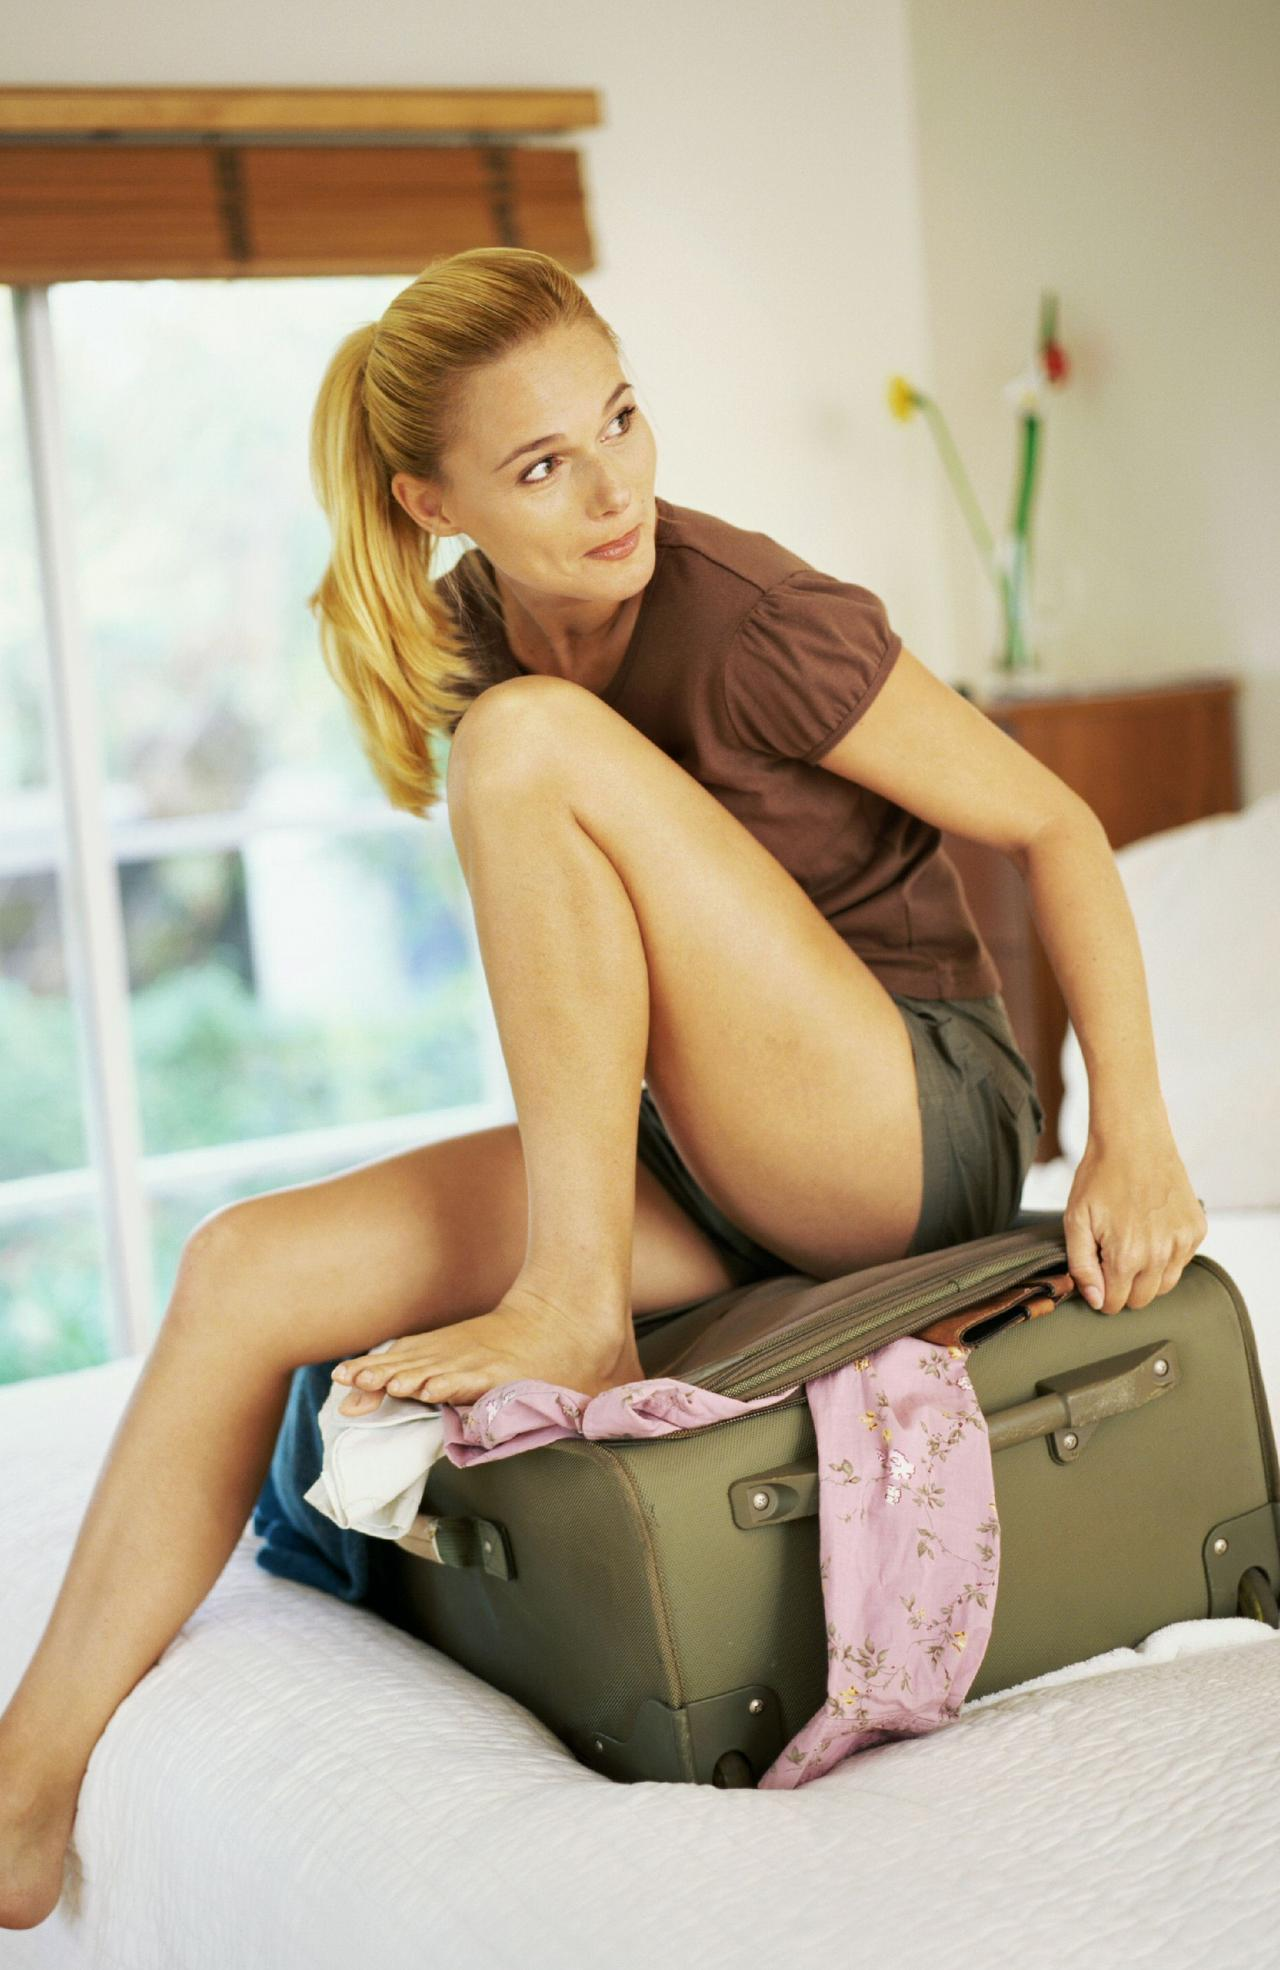 Young woman sitting on a suitcase full of clothes